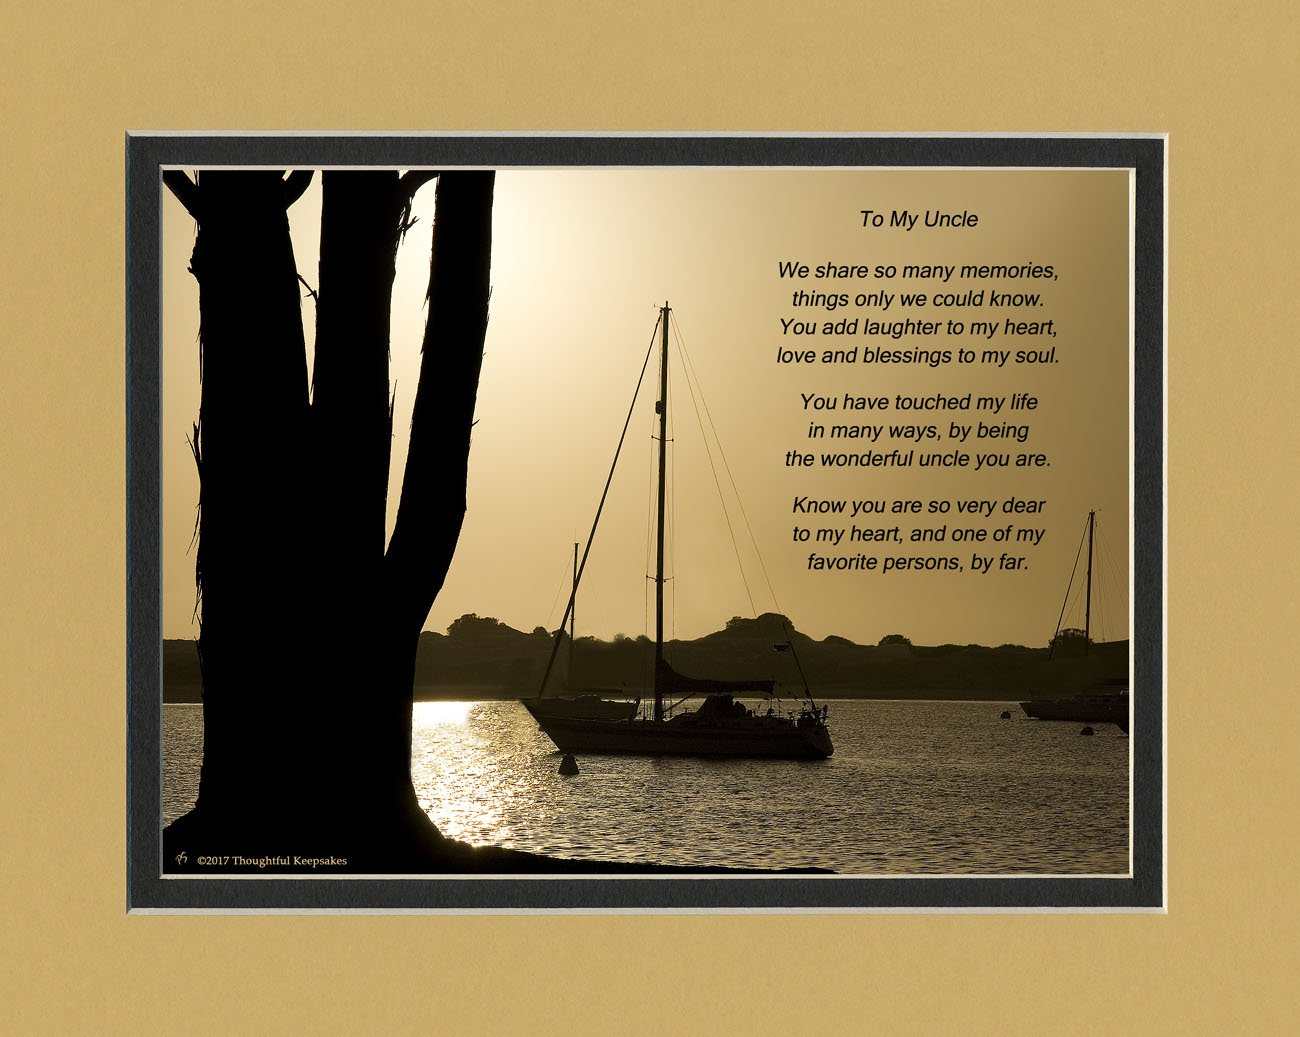 Uncle Gift with You Have Touched My Life in Many Ways, By Being the Wonderful Uncle You Are Poem. Boats at Dusk Photo, 8x10 Matted. Special Birthday or for Uncle.